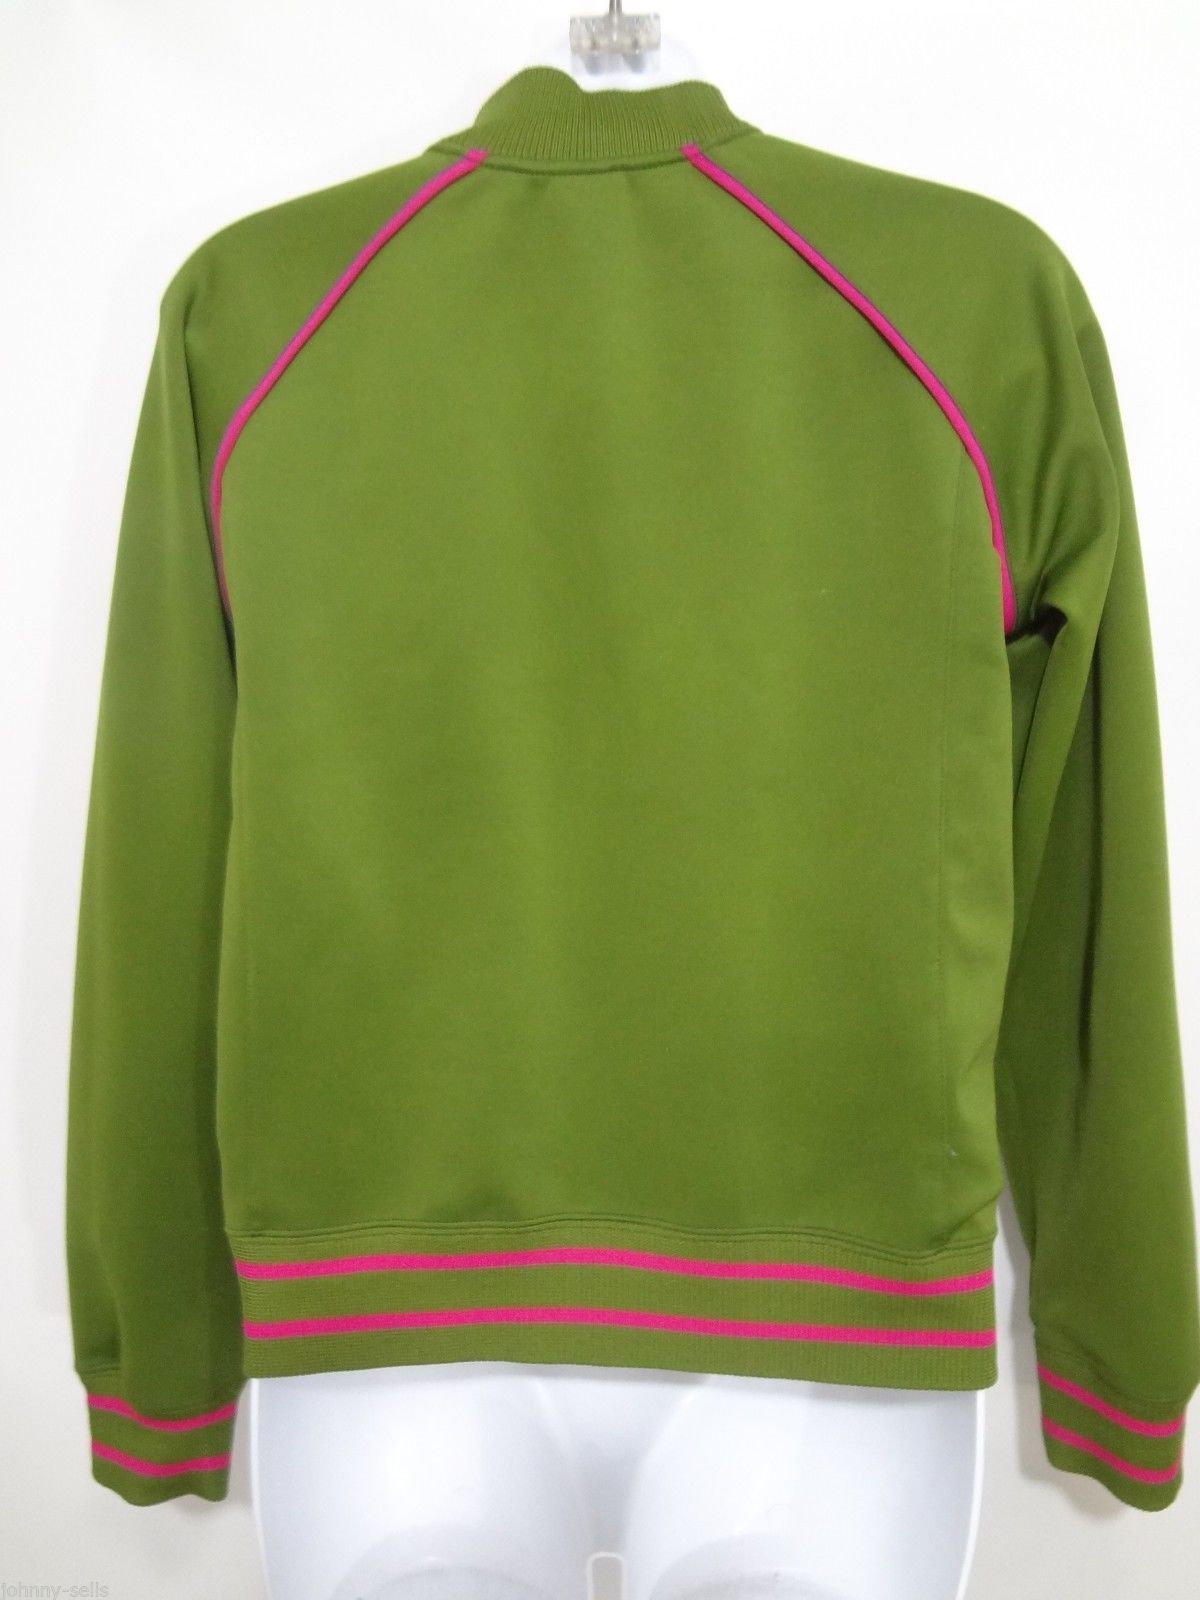 The North Face Girls Large A5 Series Olive Green w Pink Accents Warm-Up Jacket